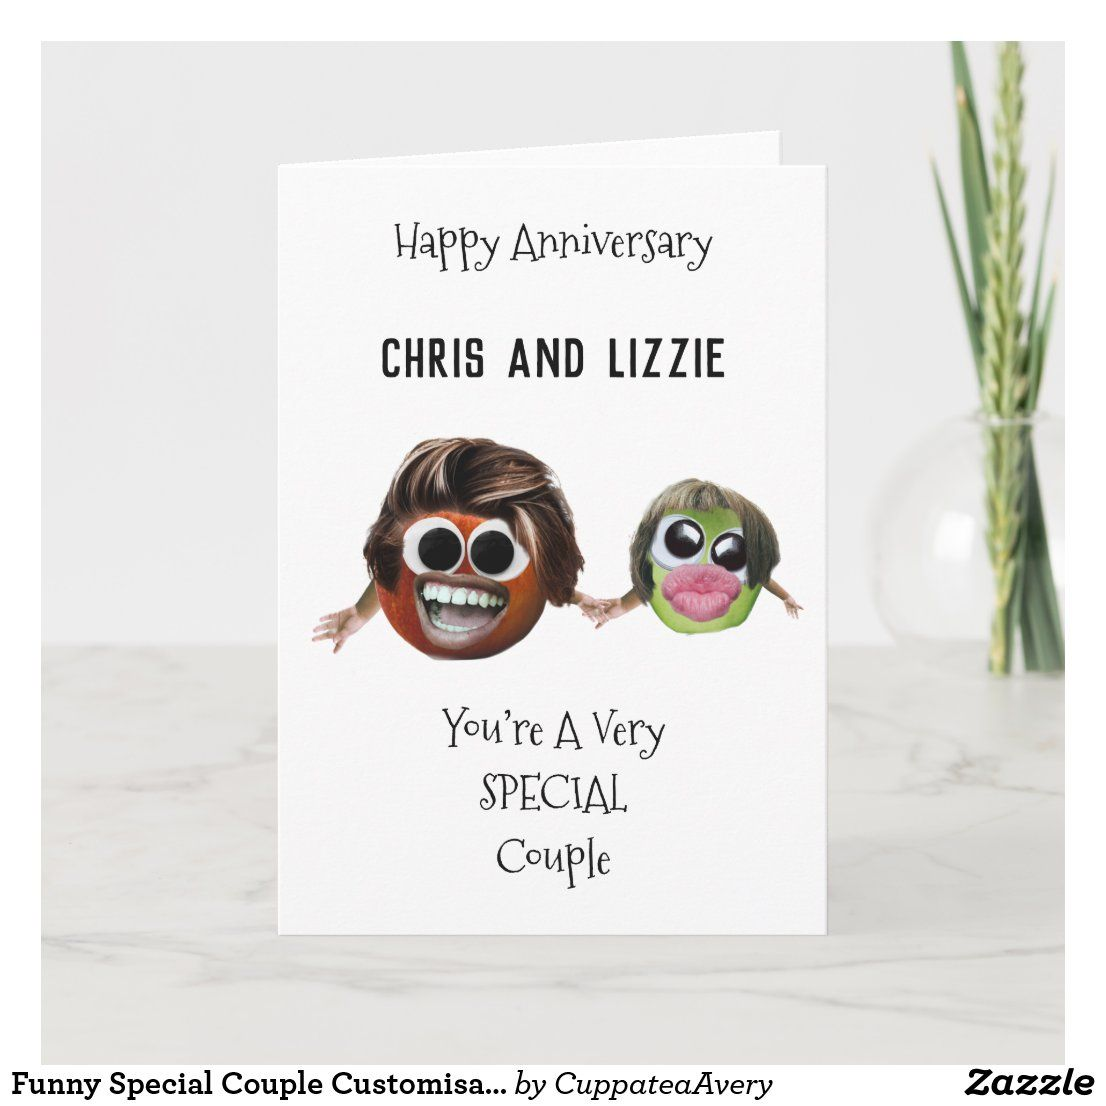 Funny Special Couple Customizable Anniversary Card Zazzle Com Funny Anniversary Cards Anniversary Cards Anniversary Funny